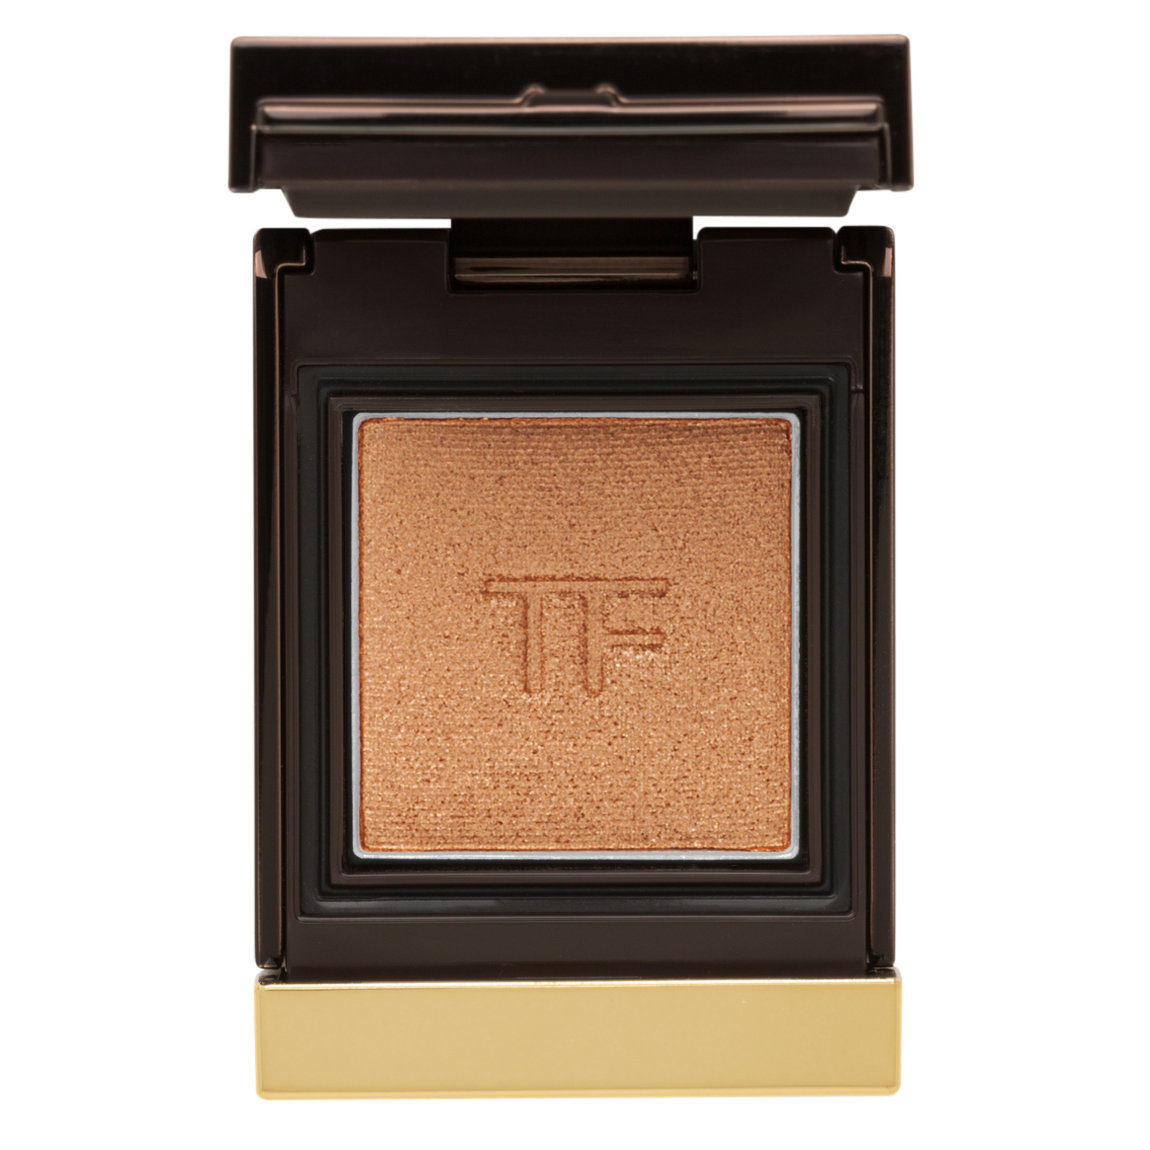 TOM FORD Private Eyeshadow Warm Leatherette product smear.